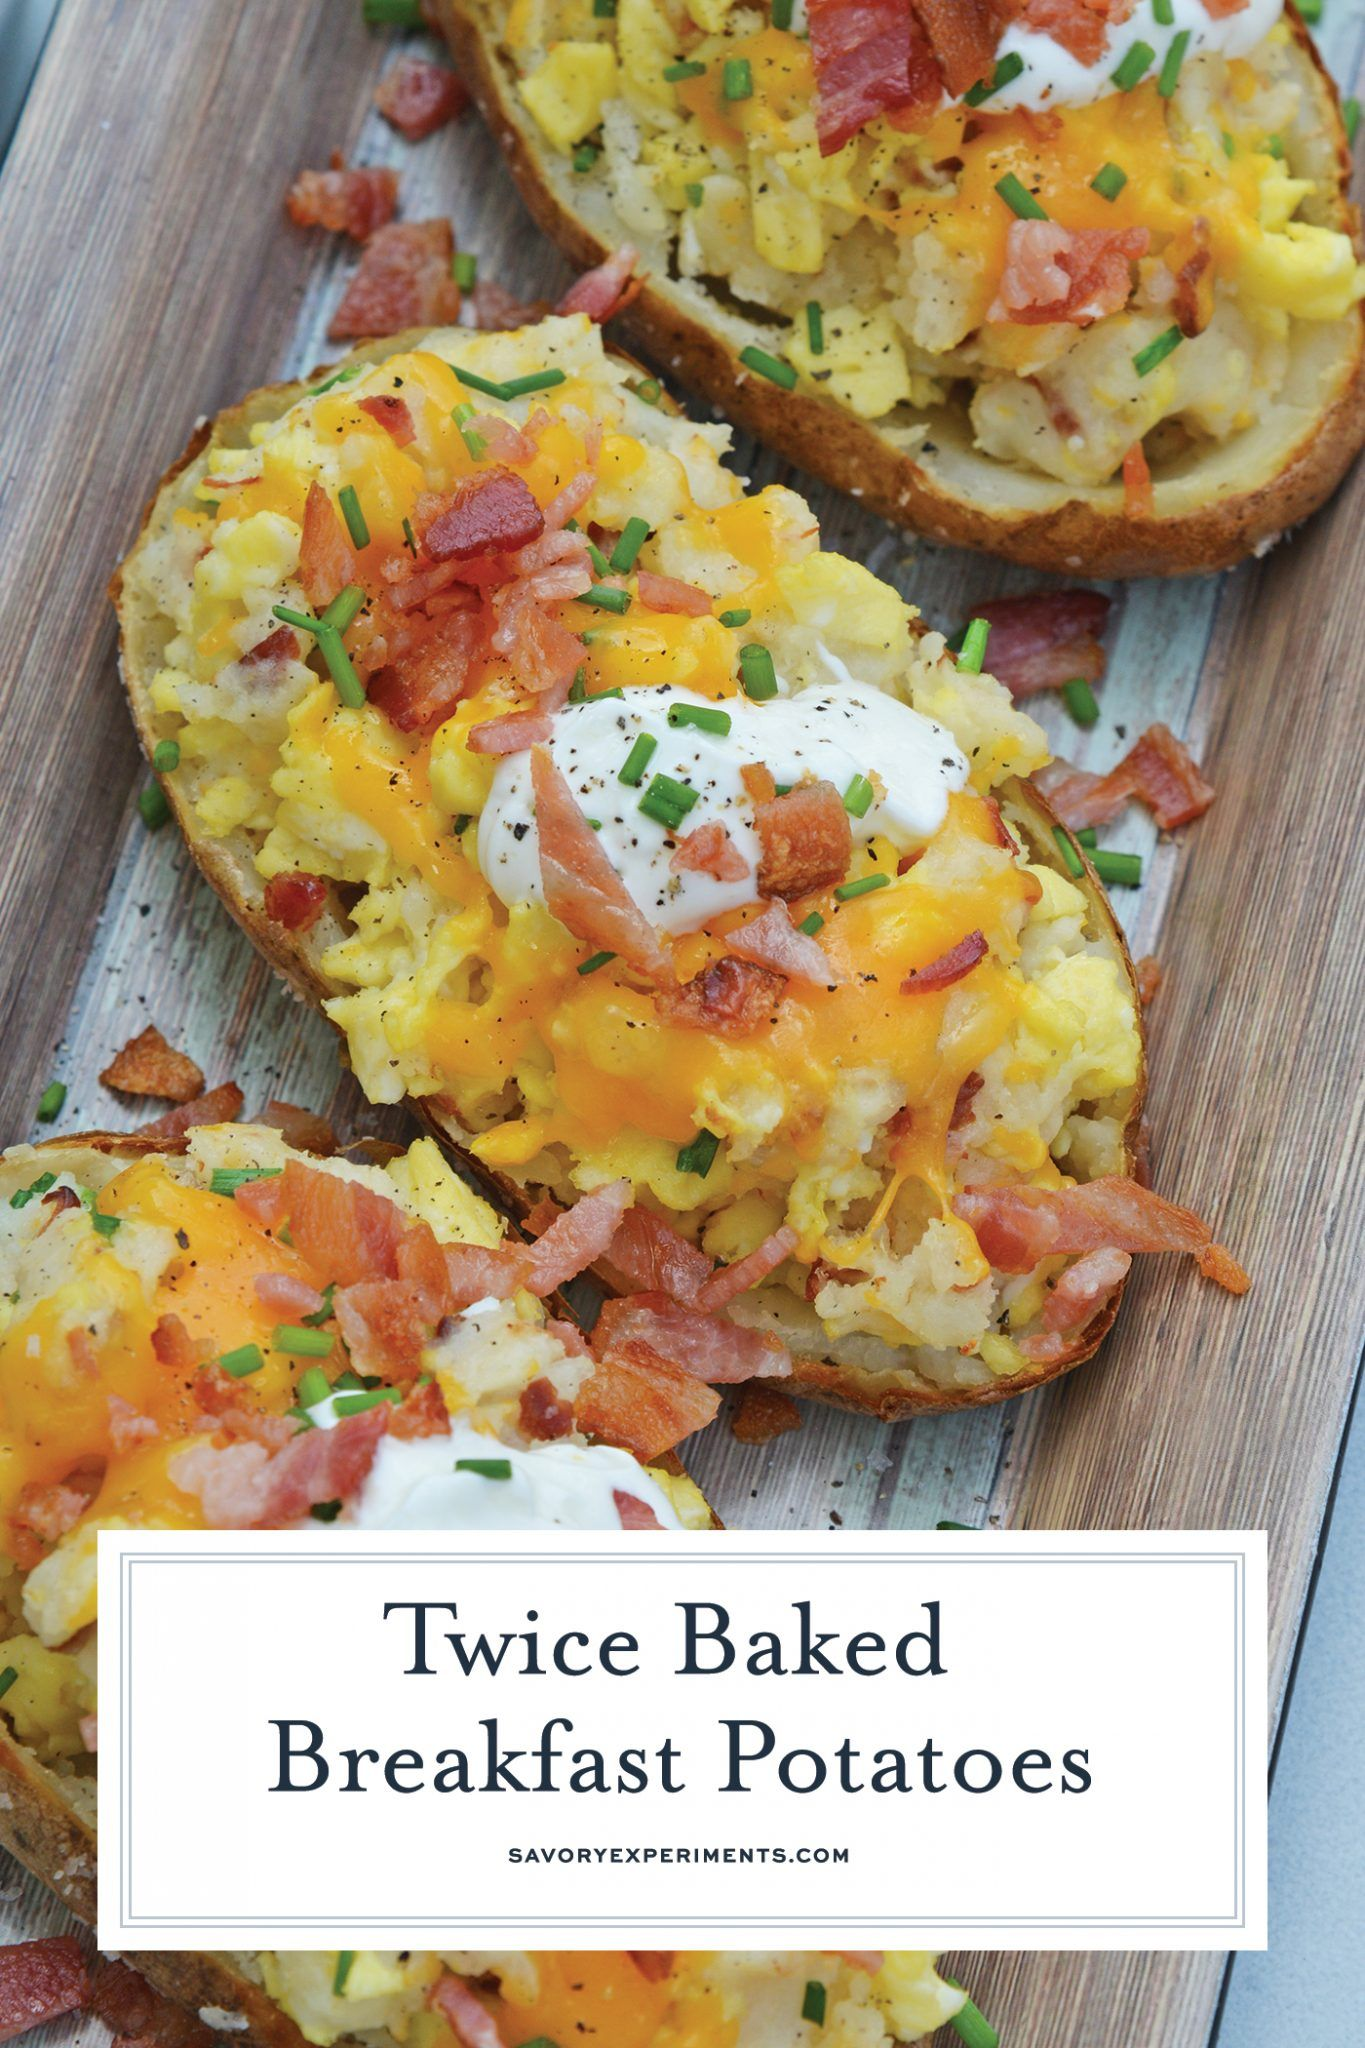 Twice Baked Breakfast Potatoes Use Leftover Potatoes With Scrambled Eggs Cheddar Cheese Chives Breakfast Potatoes Easy Breakfast Potatoes Leftover Breakfast